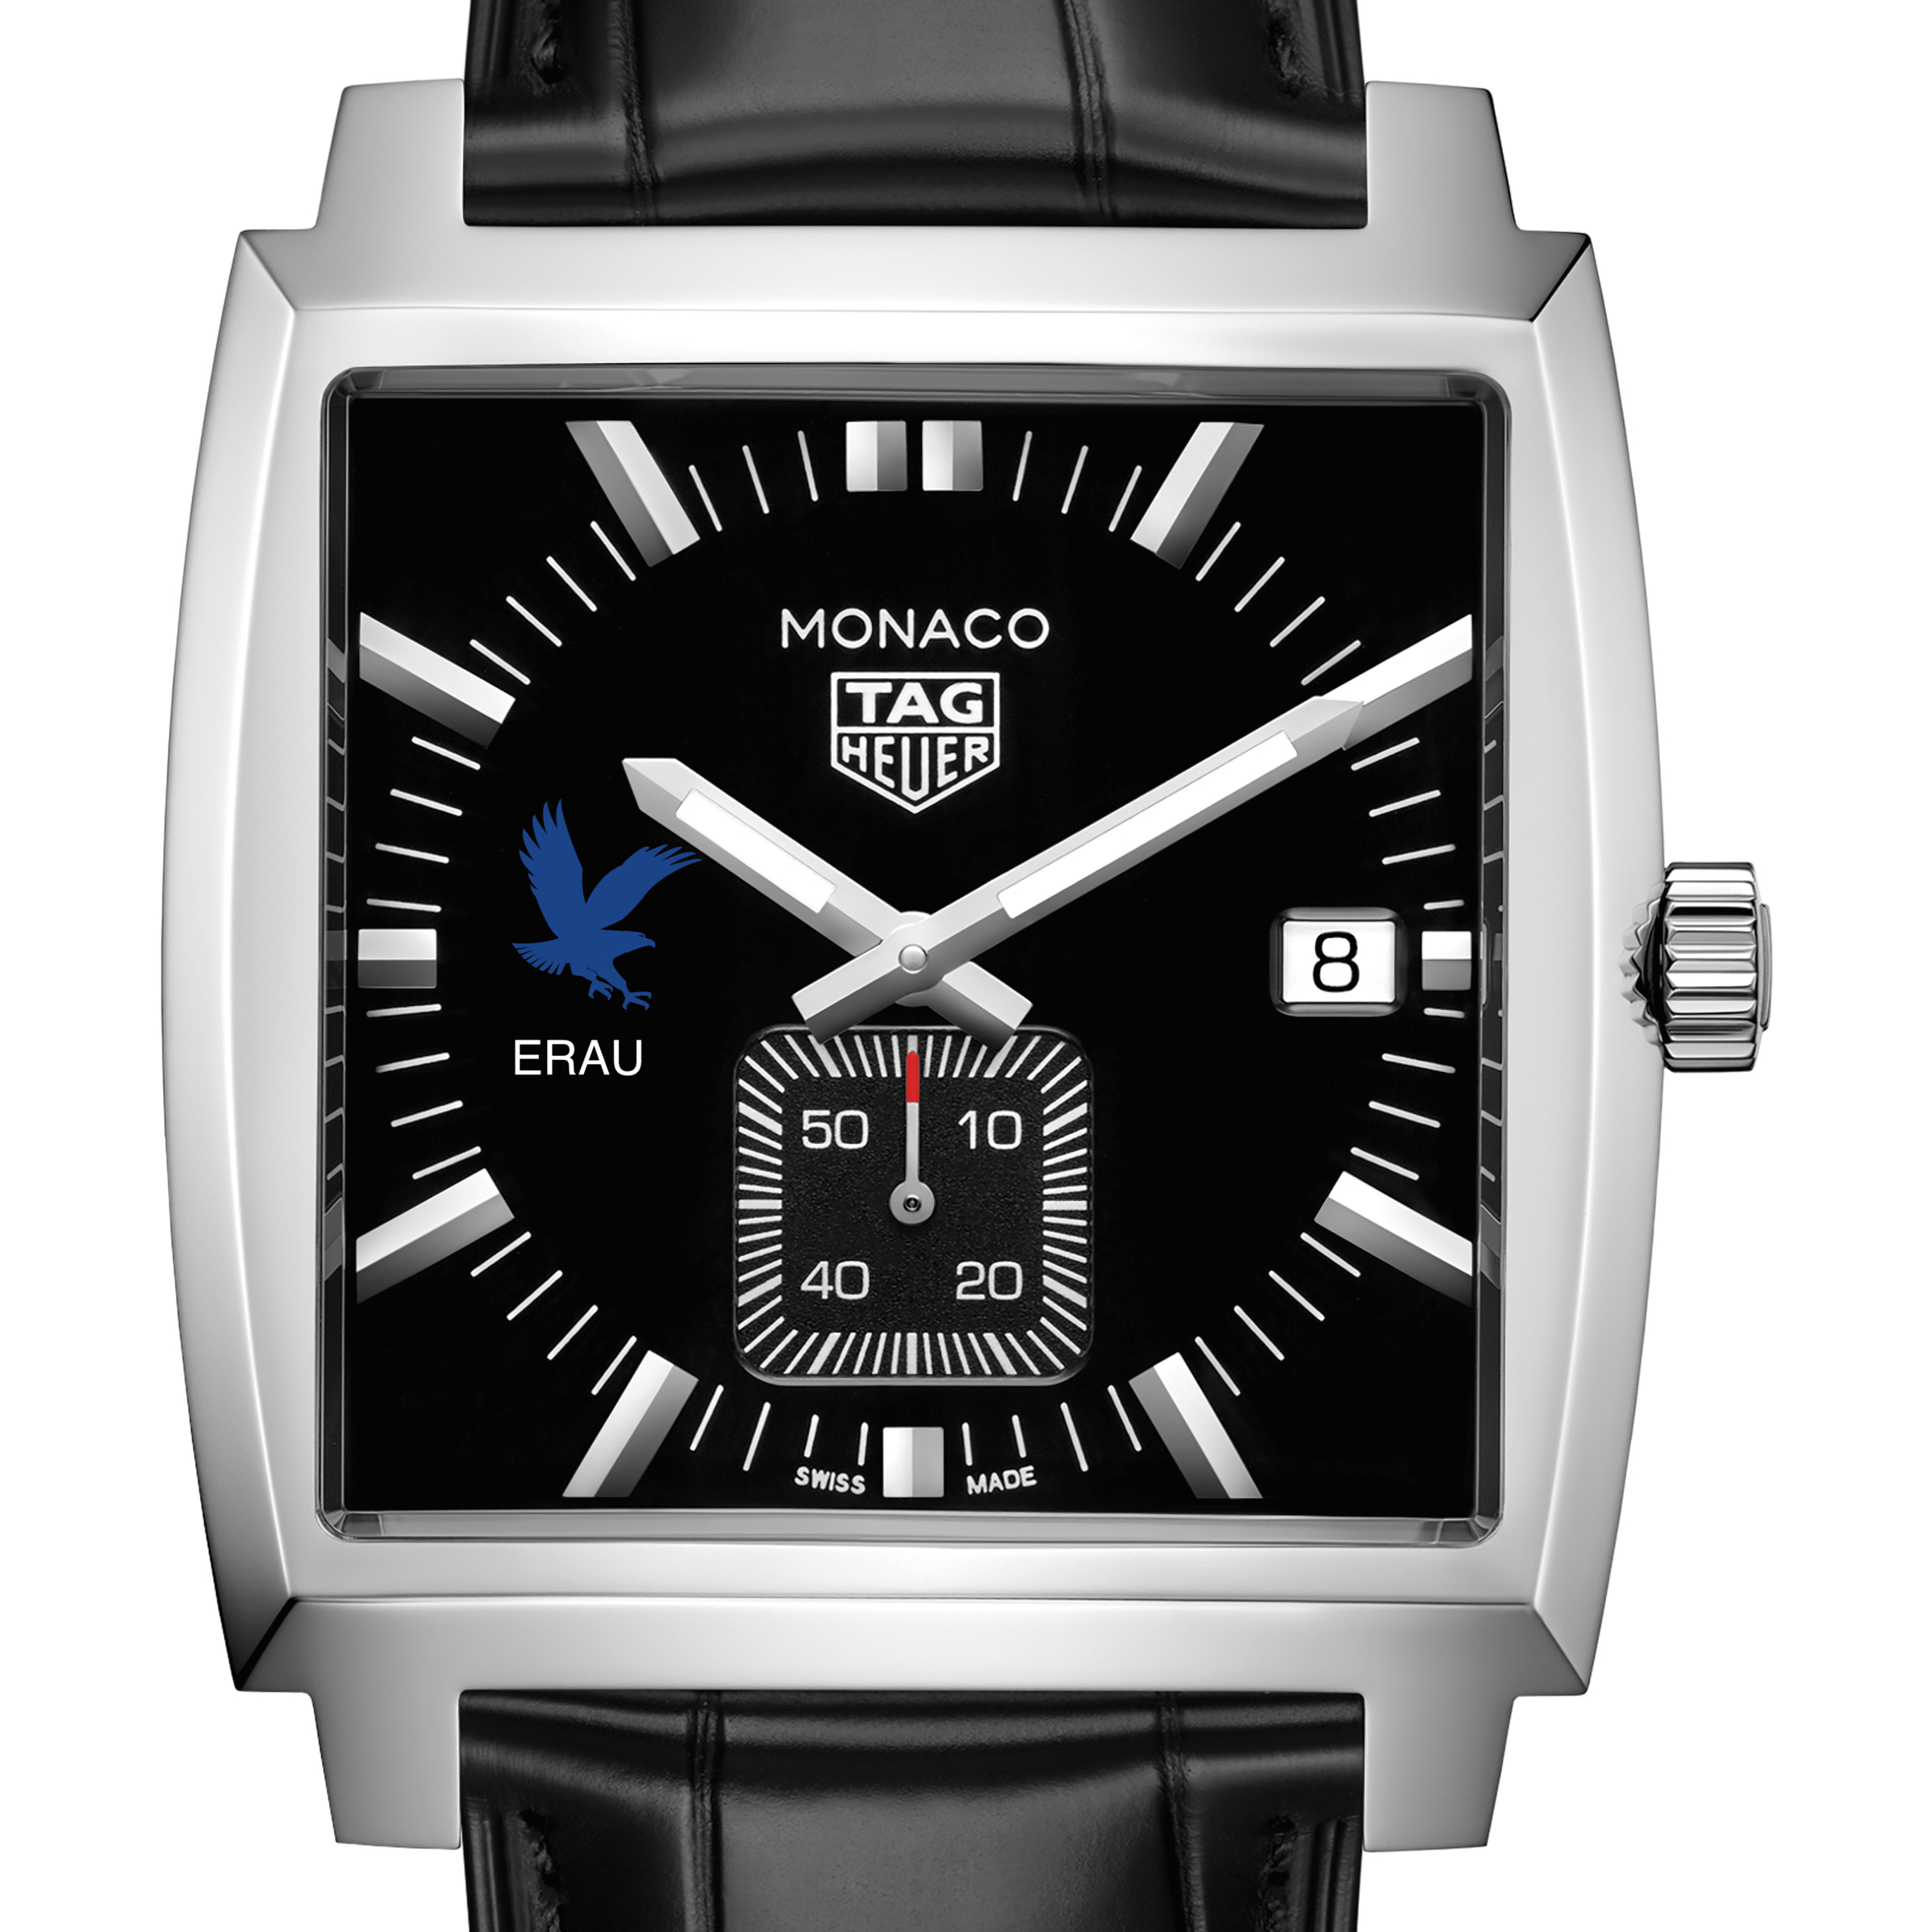 Embry-Riddle TAG Heuer Monaco with Quartz Movement for Men